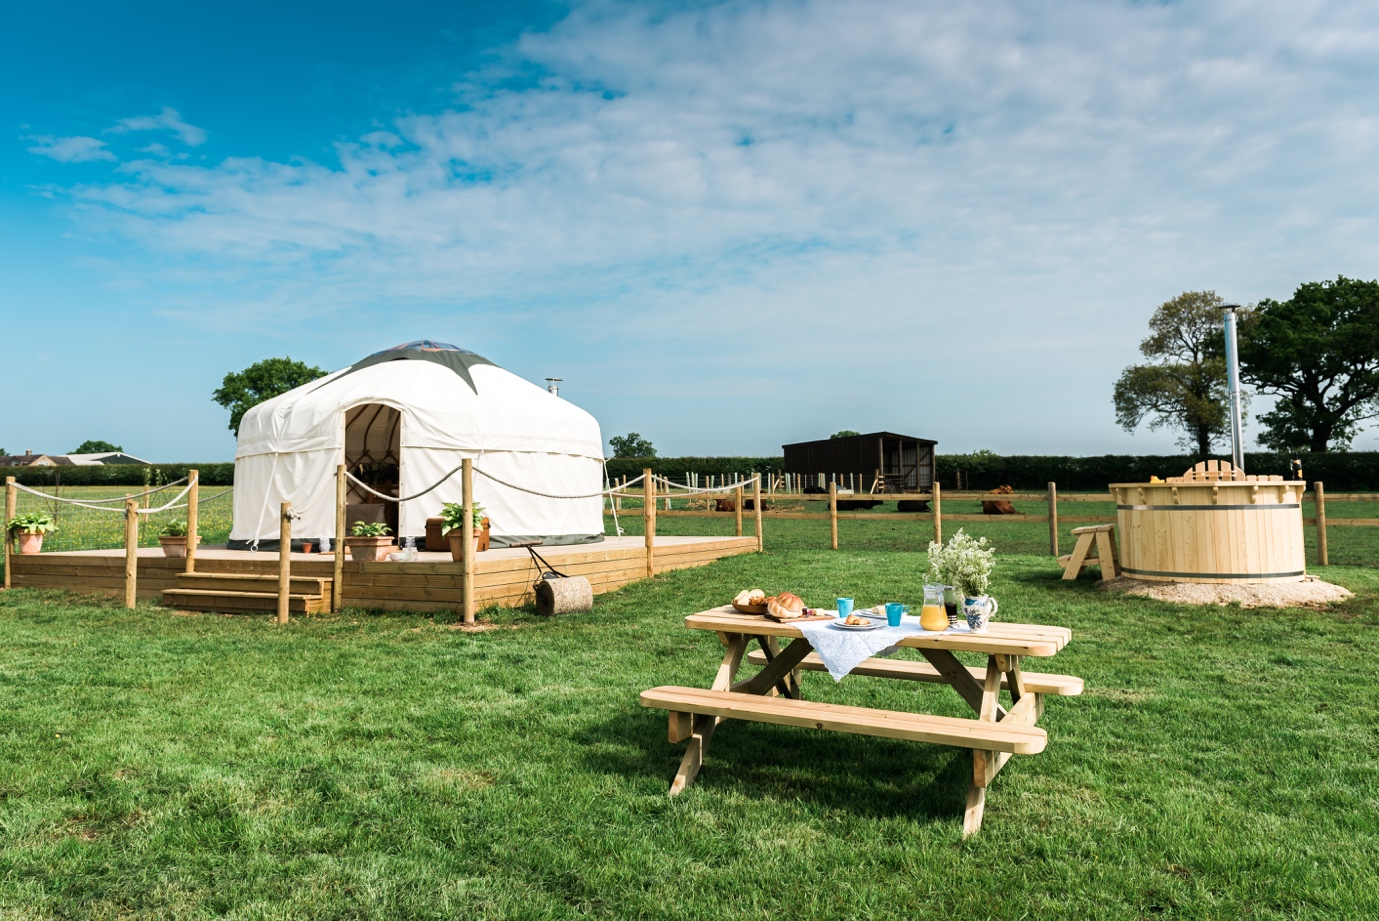 Yurt in a field, available from Quality Unearthed